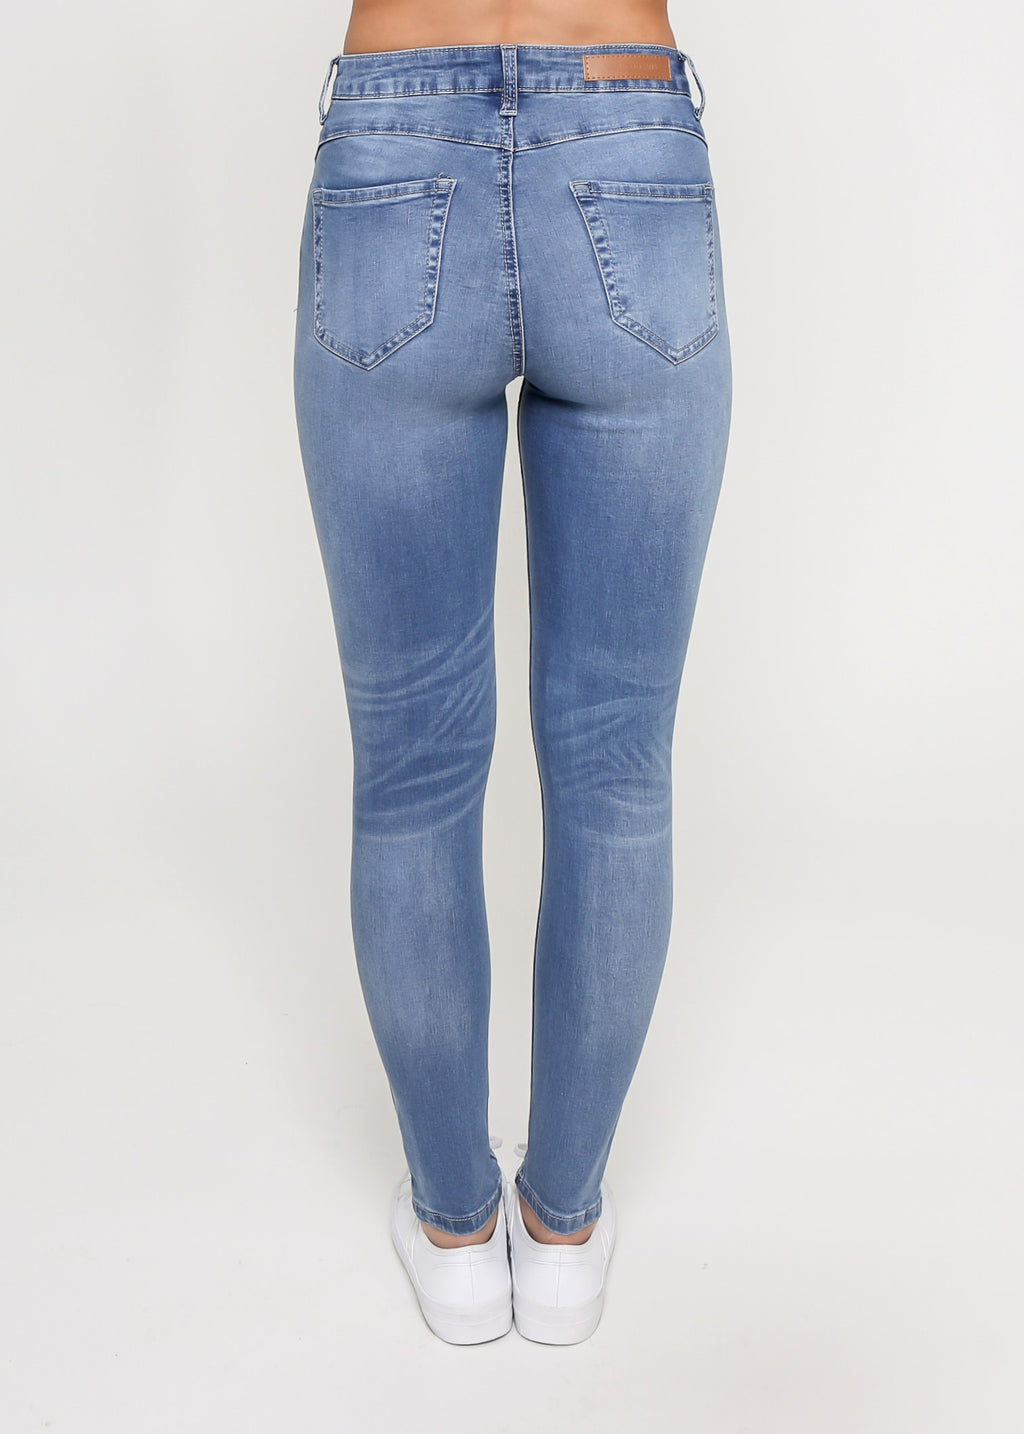 Kylie Jeans ~ Blue Wash